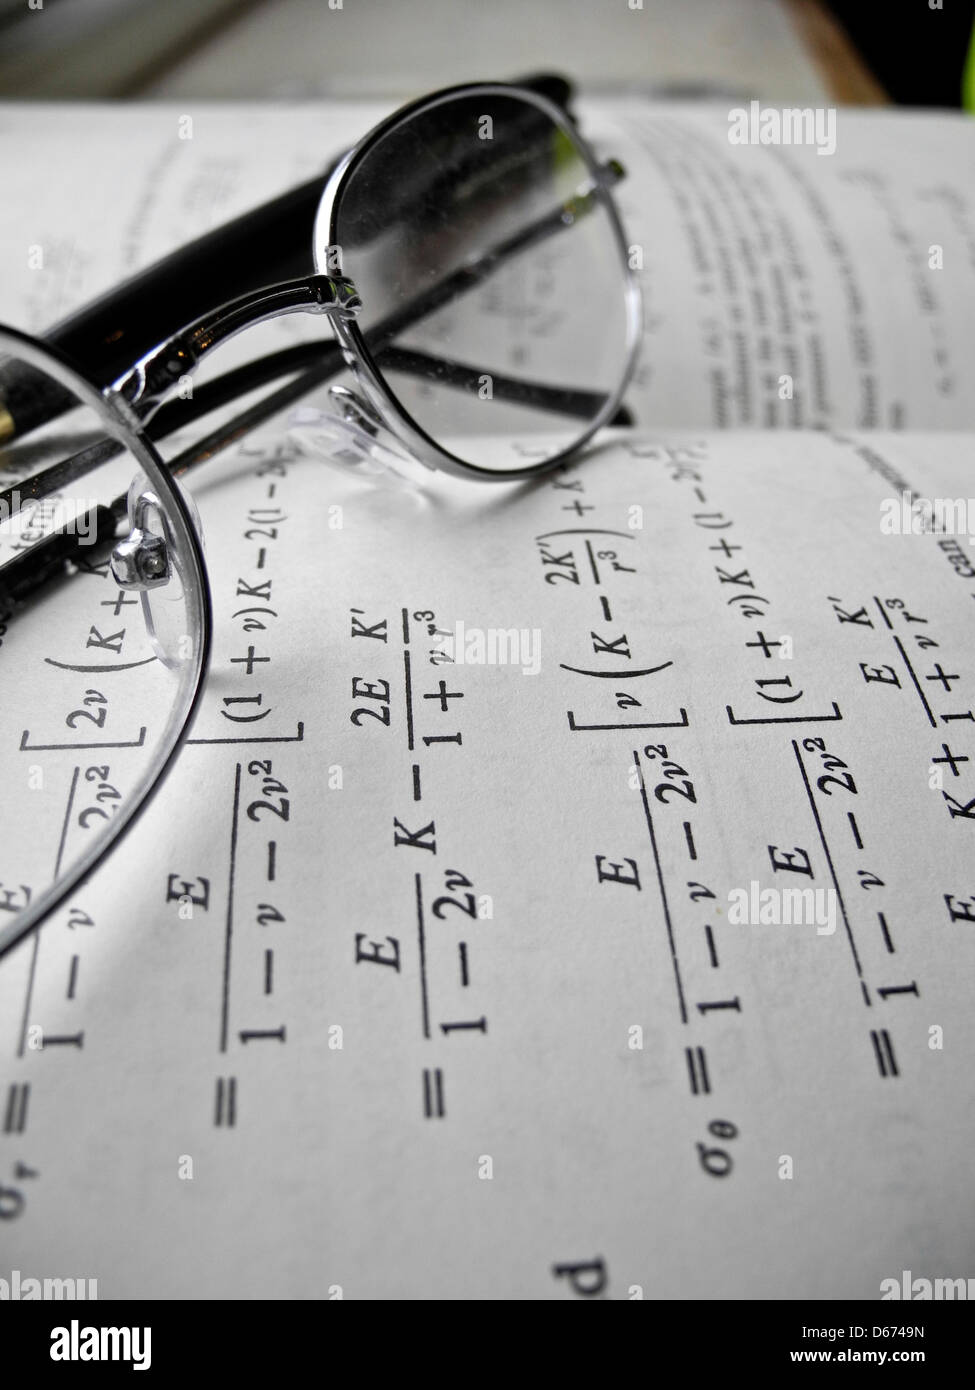 Mathematical equations and calculations for engineering studies and practice. Stock Photo